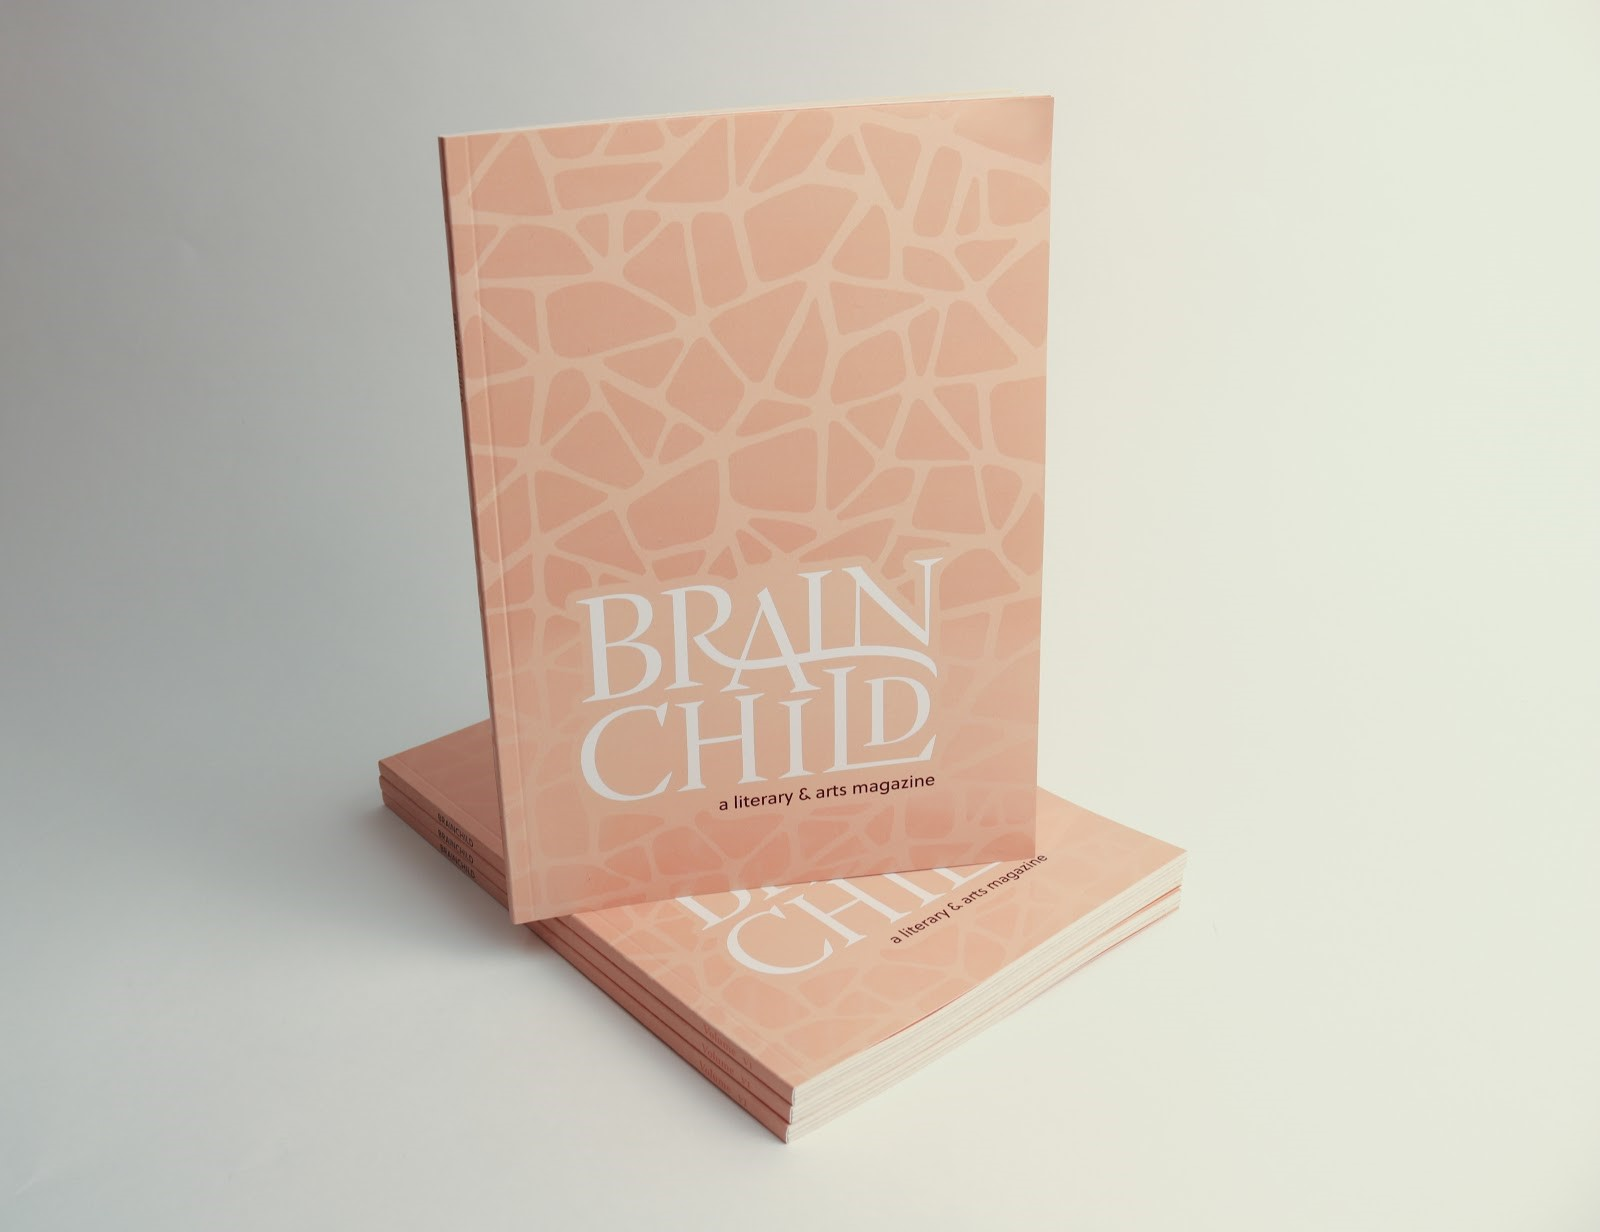 Brainchild Magazine, a Kent State student-run literary and arts magazine, received a Gold ADDY for magazine design.